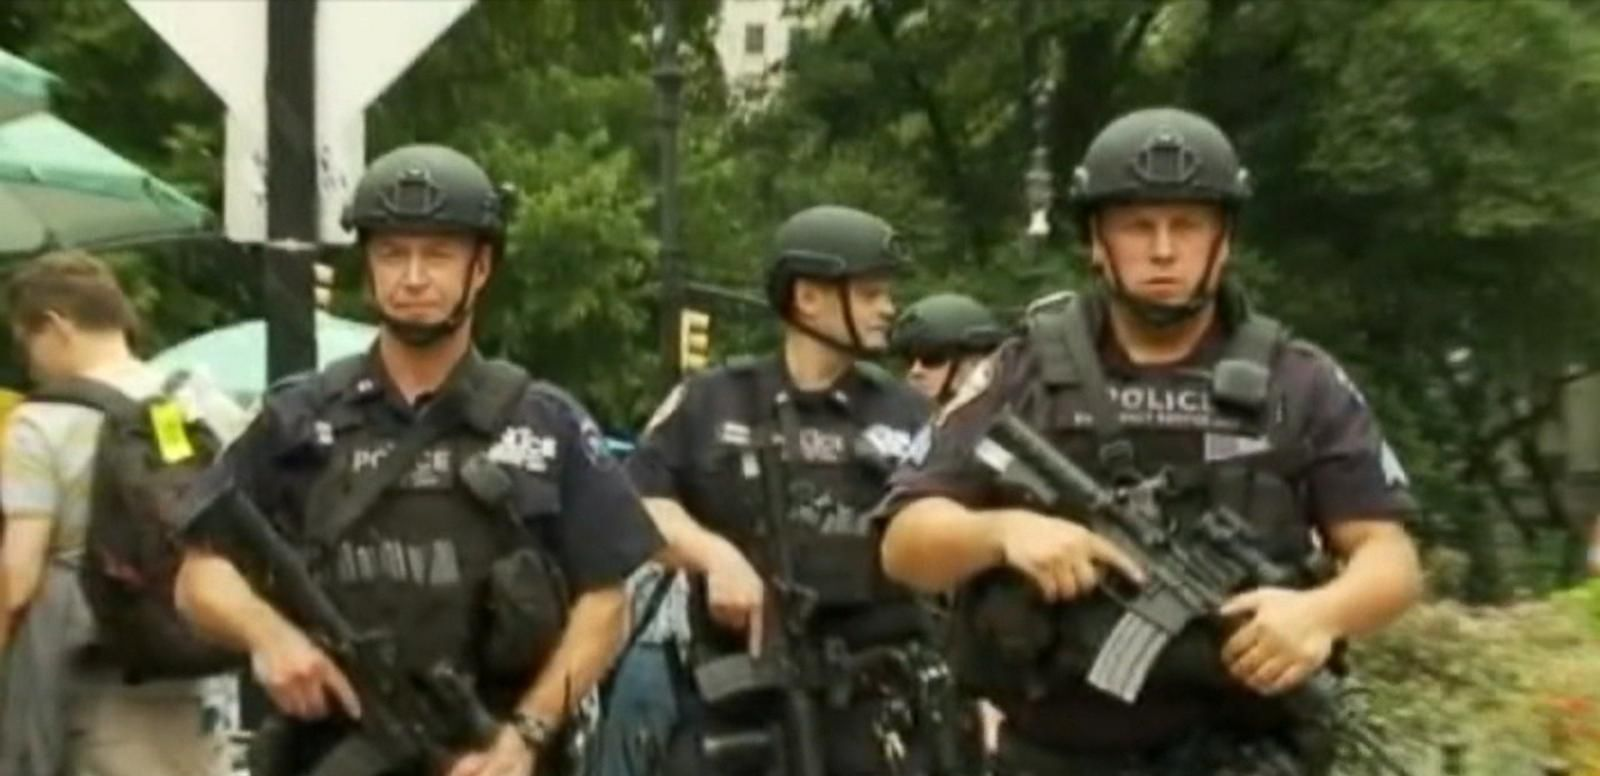 VIDEO: US Authorities Raise Security During 4th of July Weekend